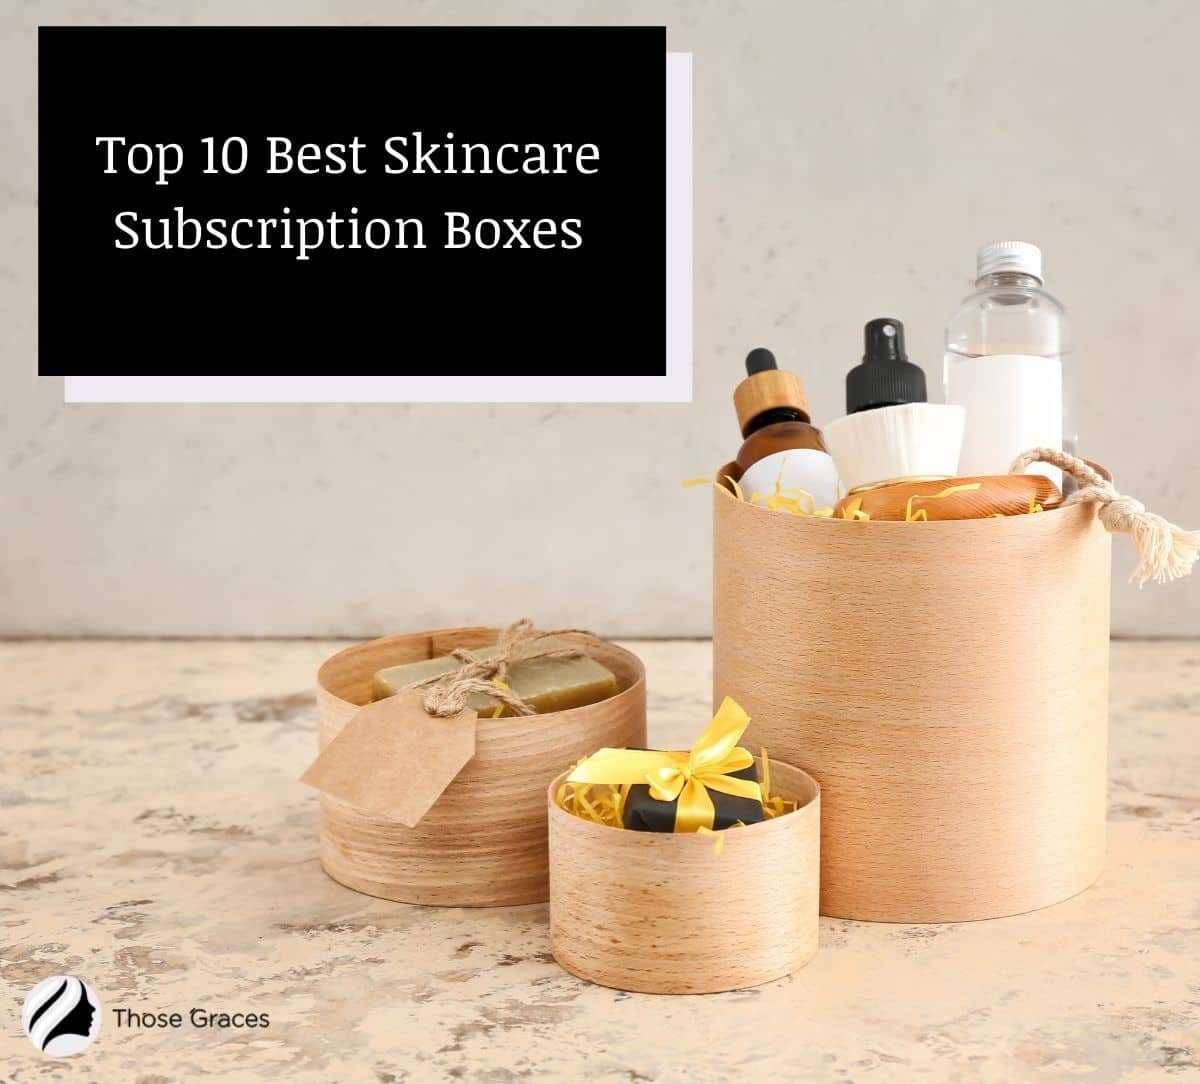 skincare subscription boxes filled with skincare products